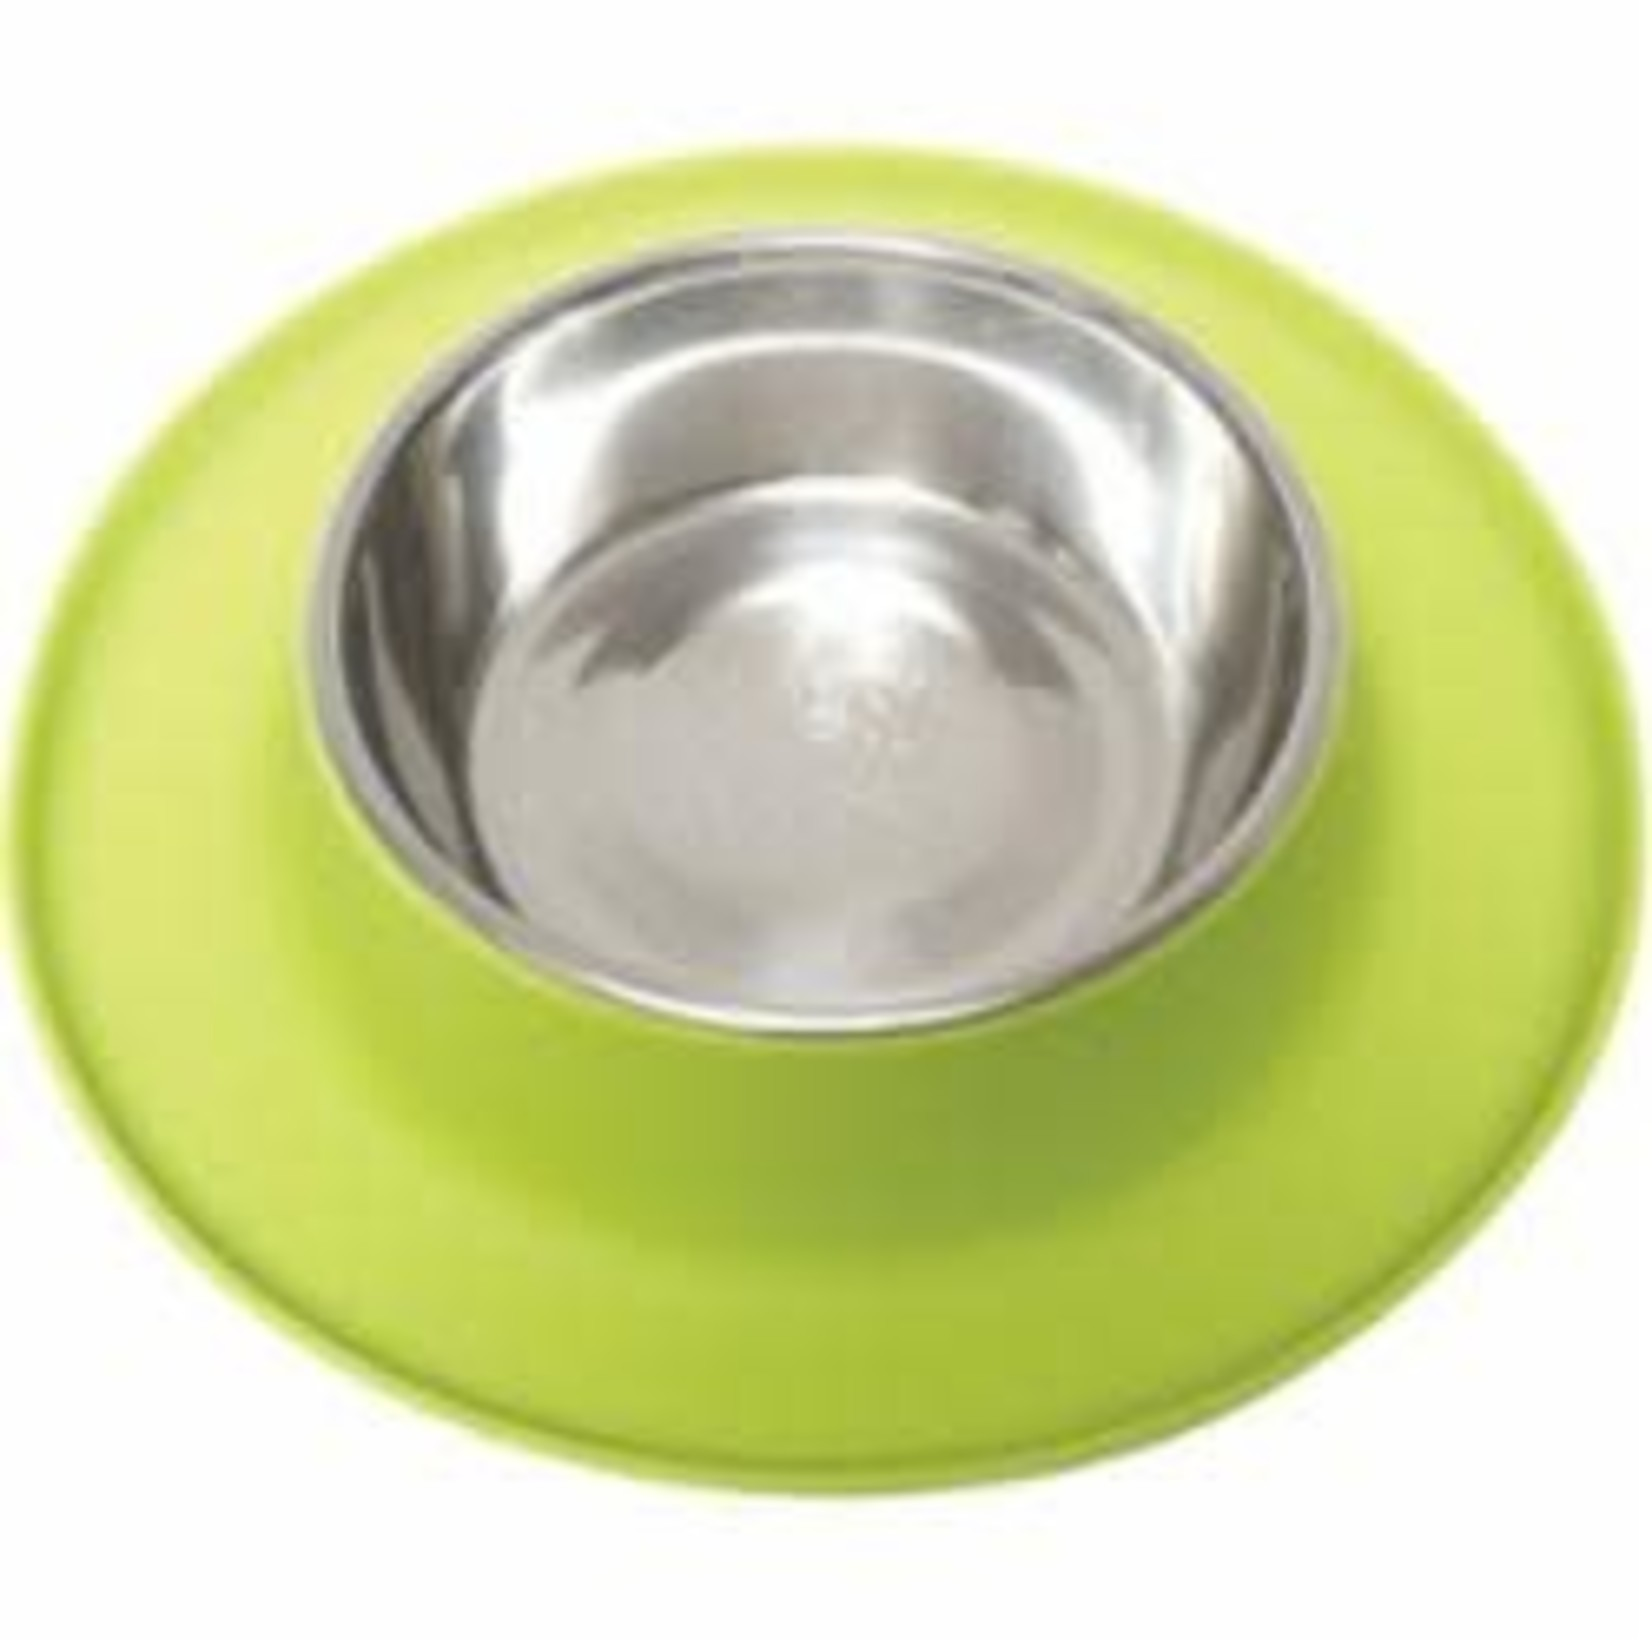 Messy Mutts Messy Mutts Dog Silicone Feeder Green 6 CUP